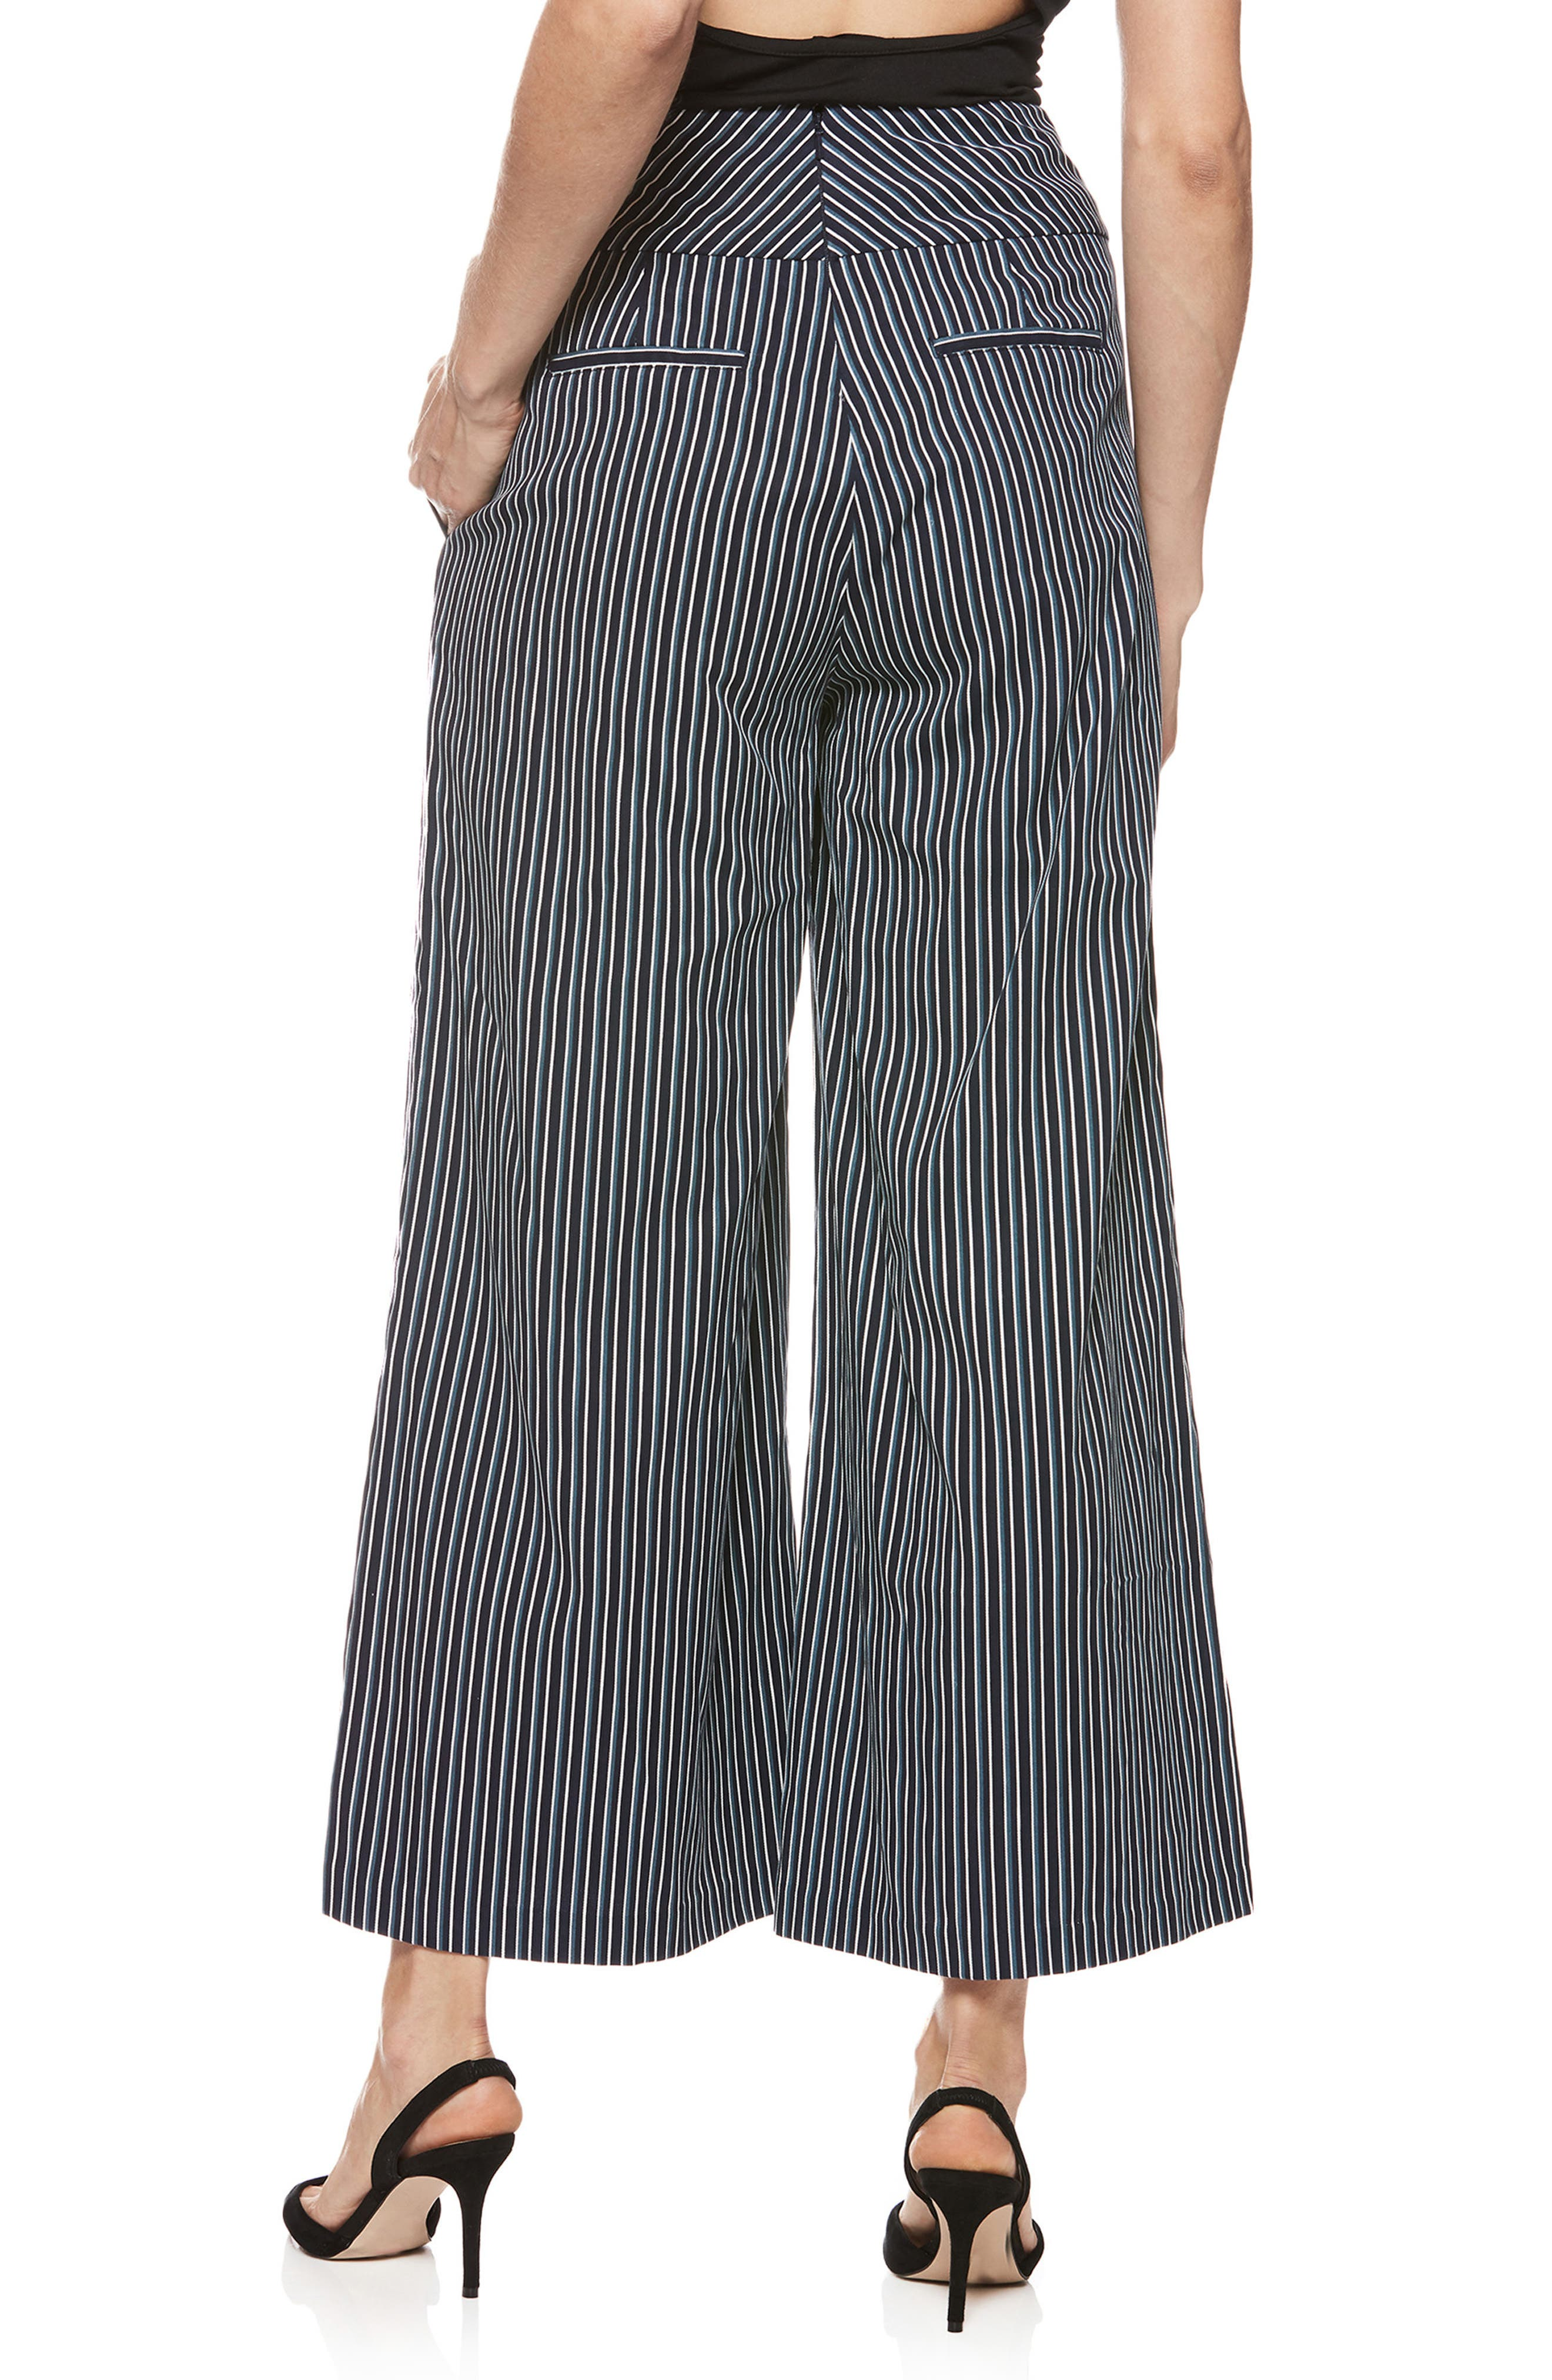 Charisma Pants,                             Alternate thumbnail 2, color,                             Rich Navy Multi